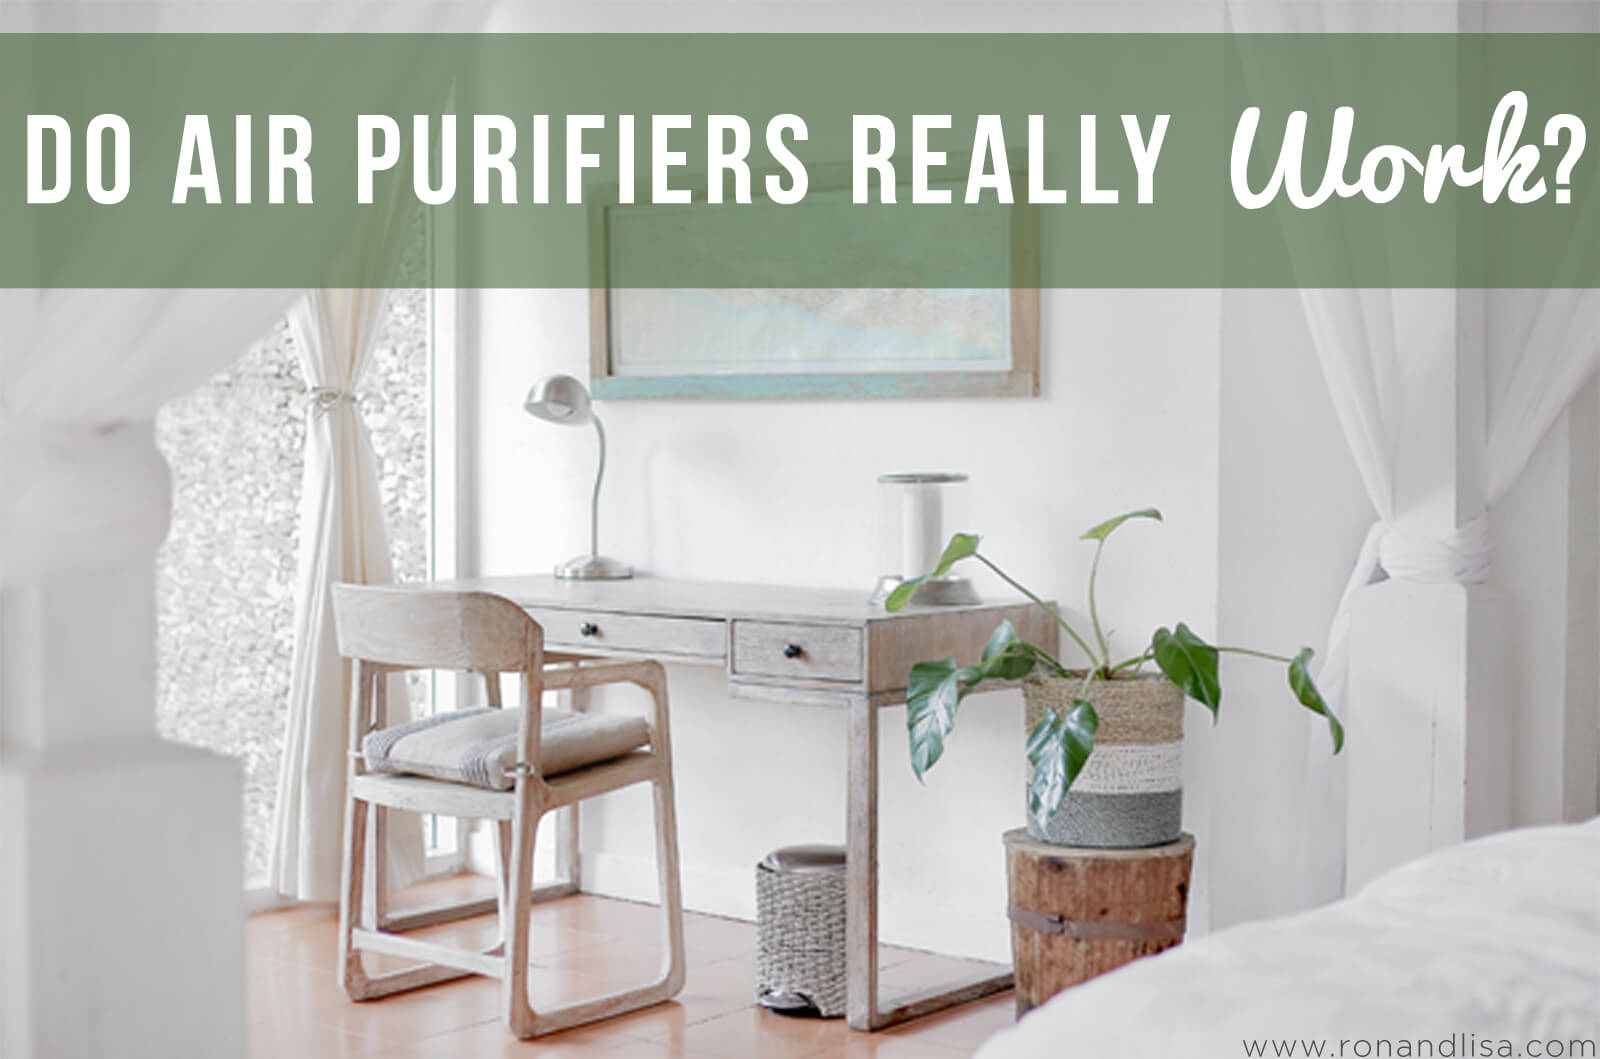 Do Air Purifiers Really Work?